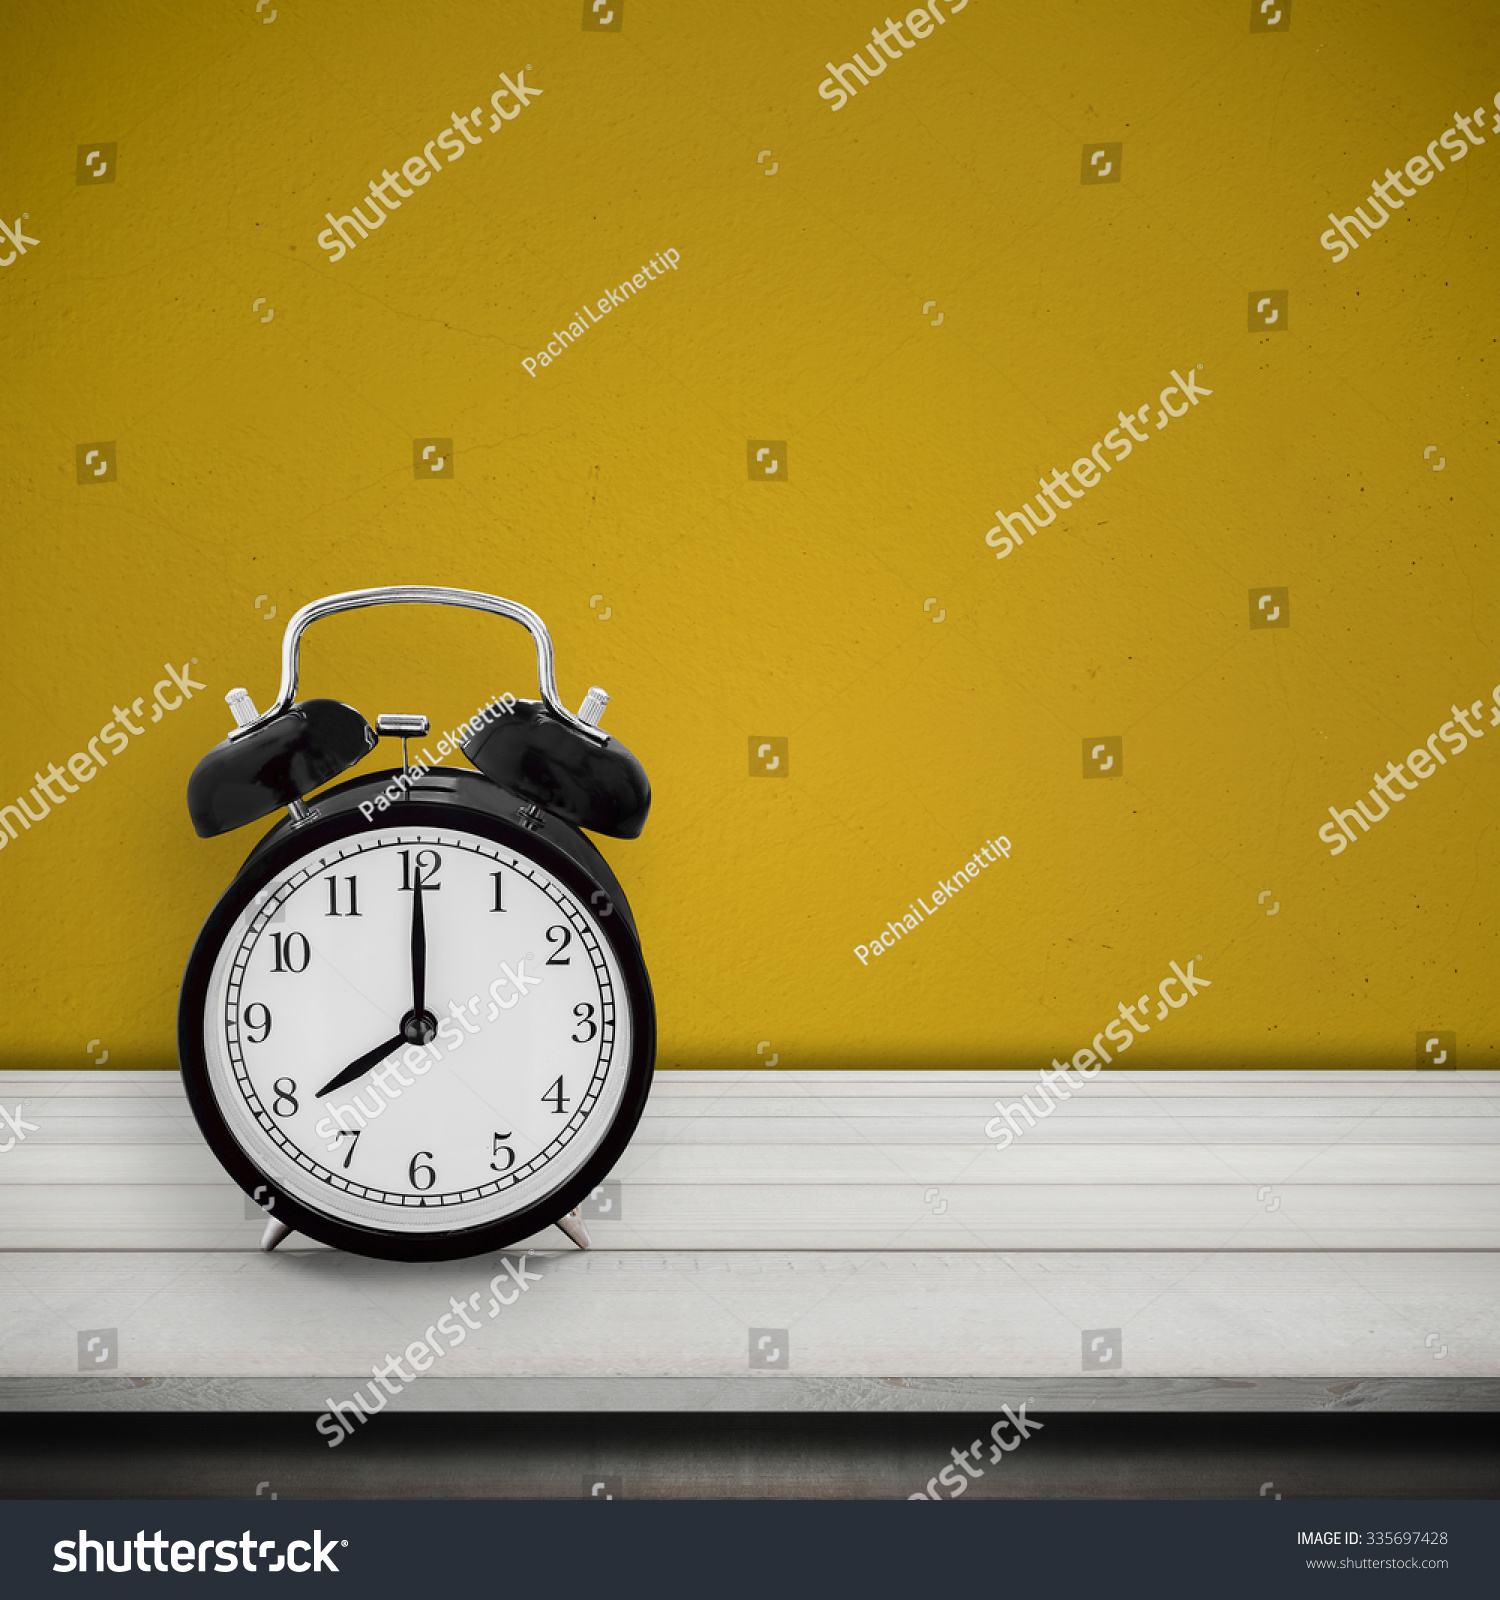 Vintage alarm clock on wood table stock photo 335697428 shutterstock vintage alarm clock on wood table desk over cement wall painted yellow color background alarm amipublicfo Image collections